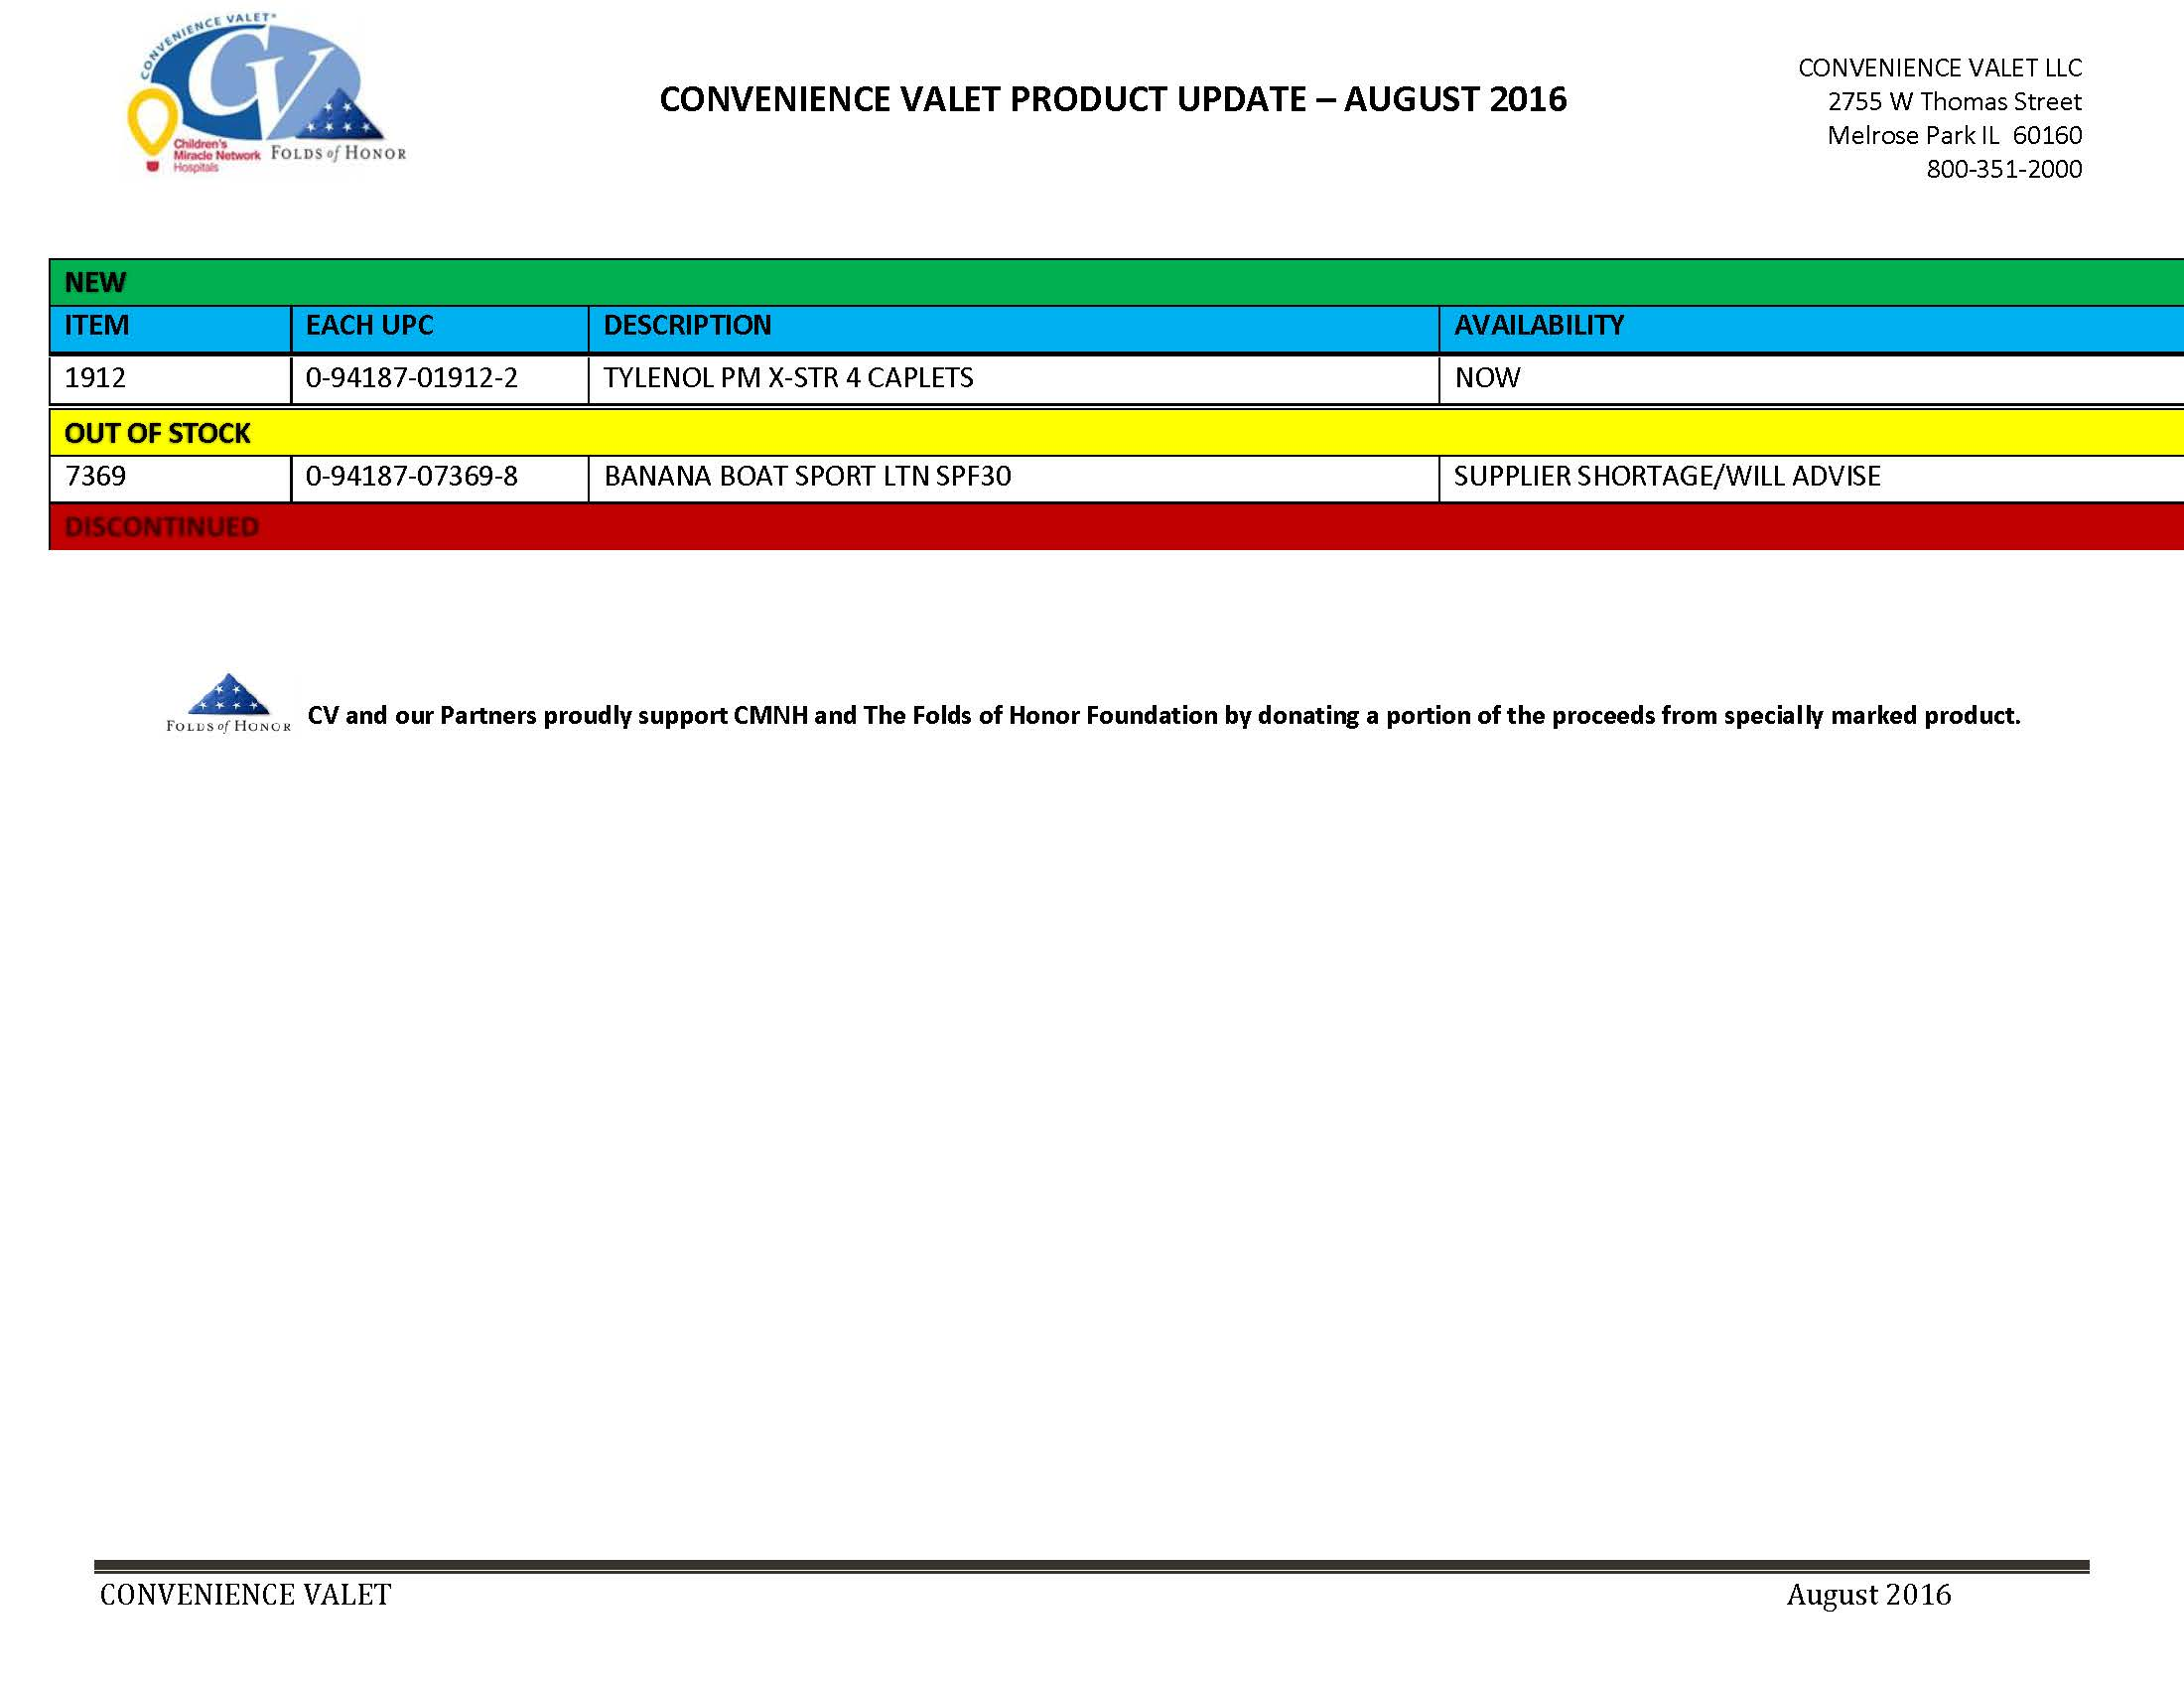 aug 2016 cv product update convenience valet